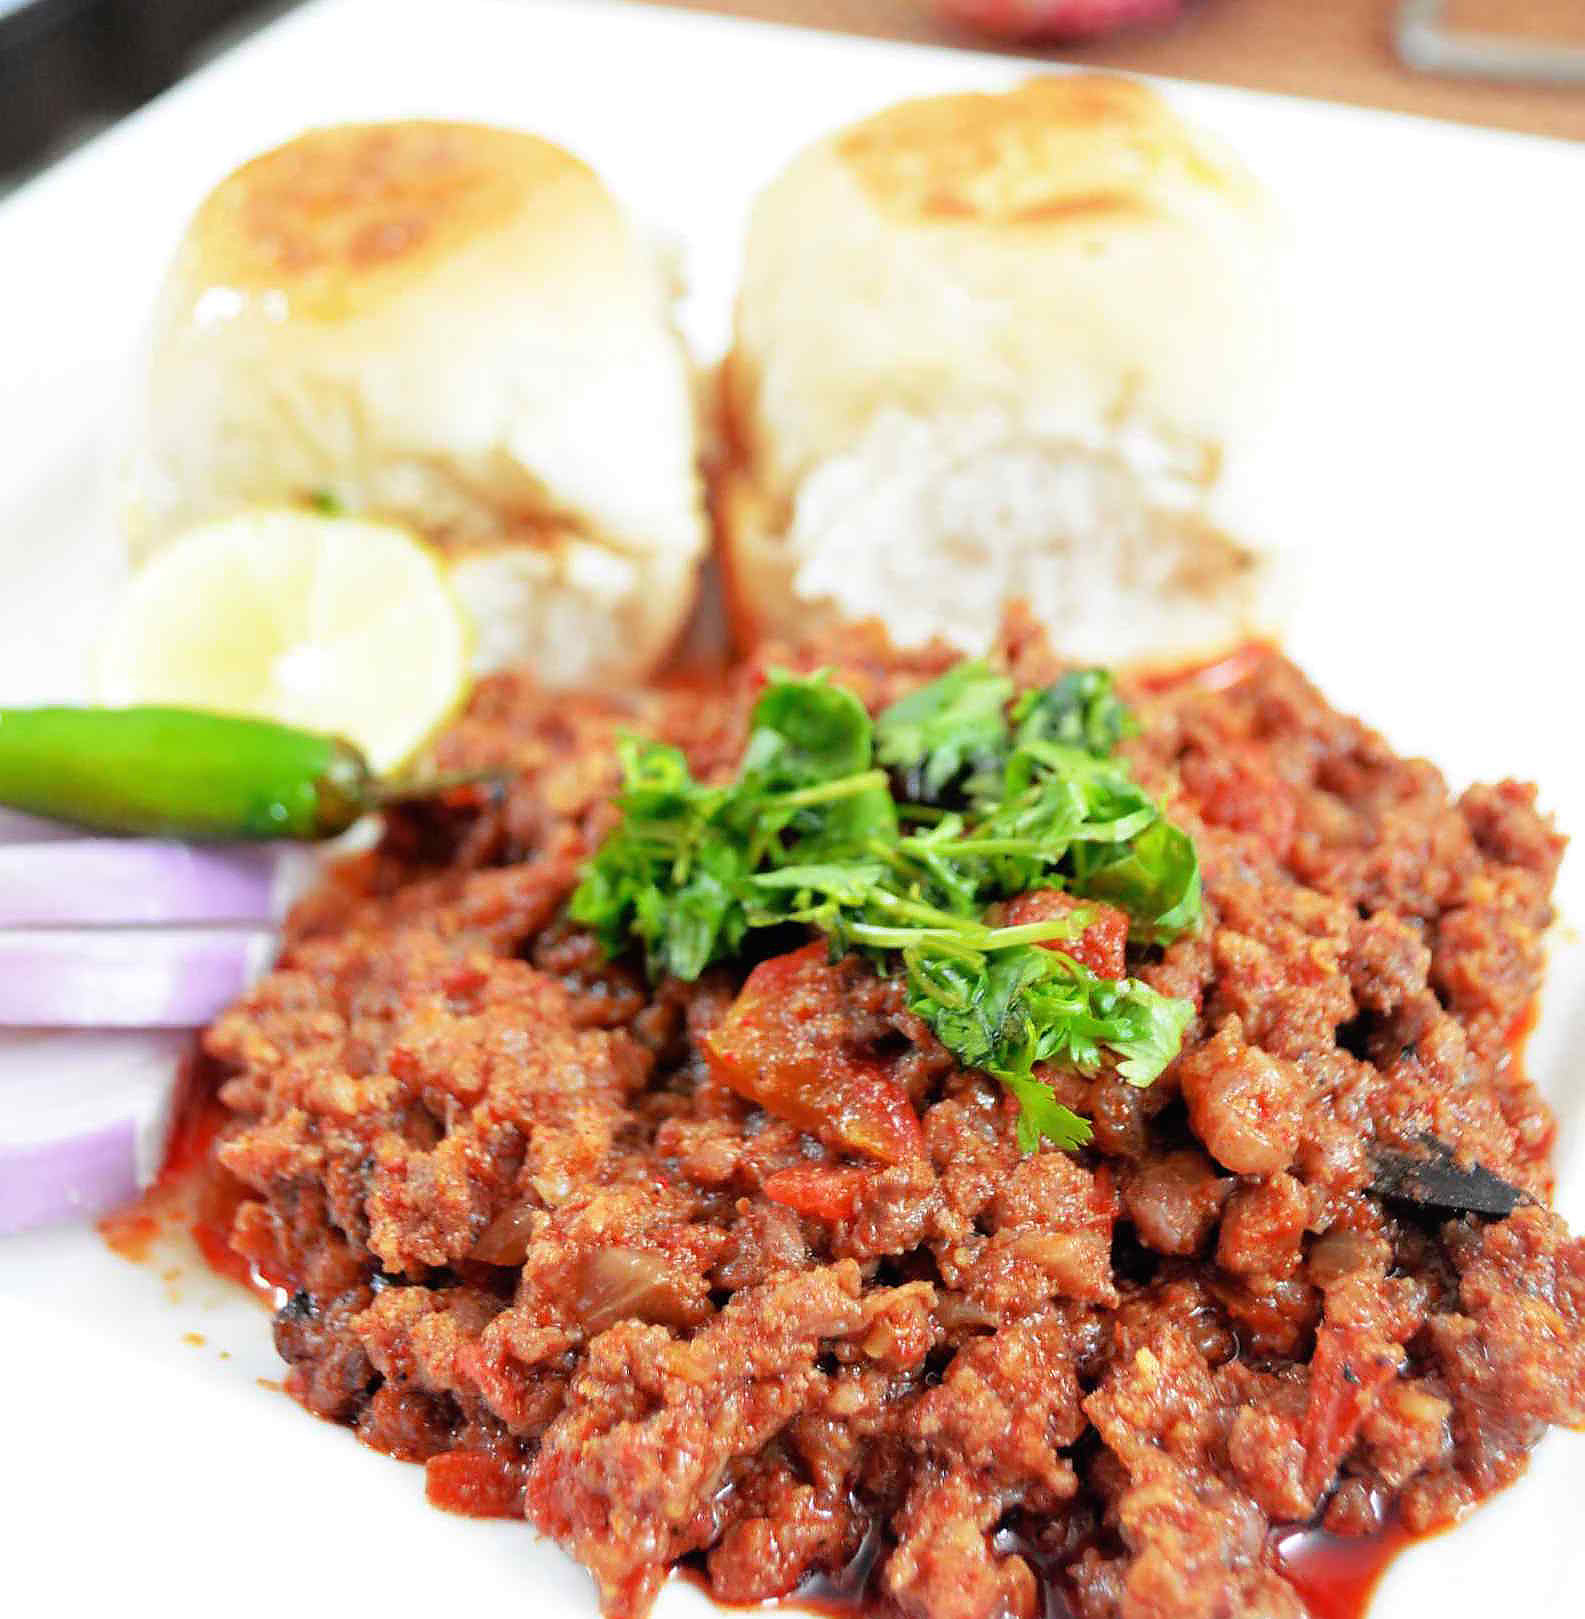 Mutton keema recipe by archanas kitchen mutton keema recipe forumfinder Images